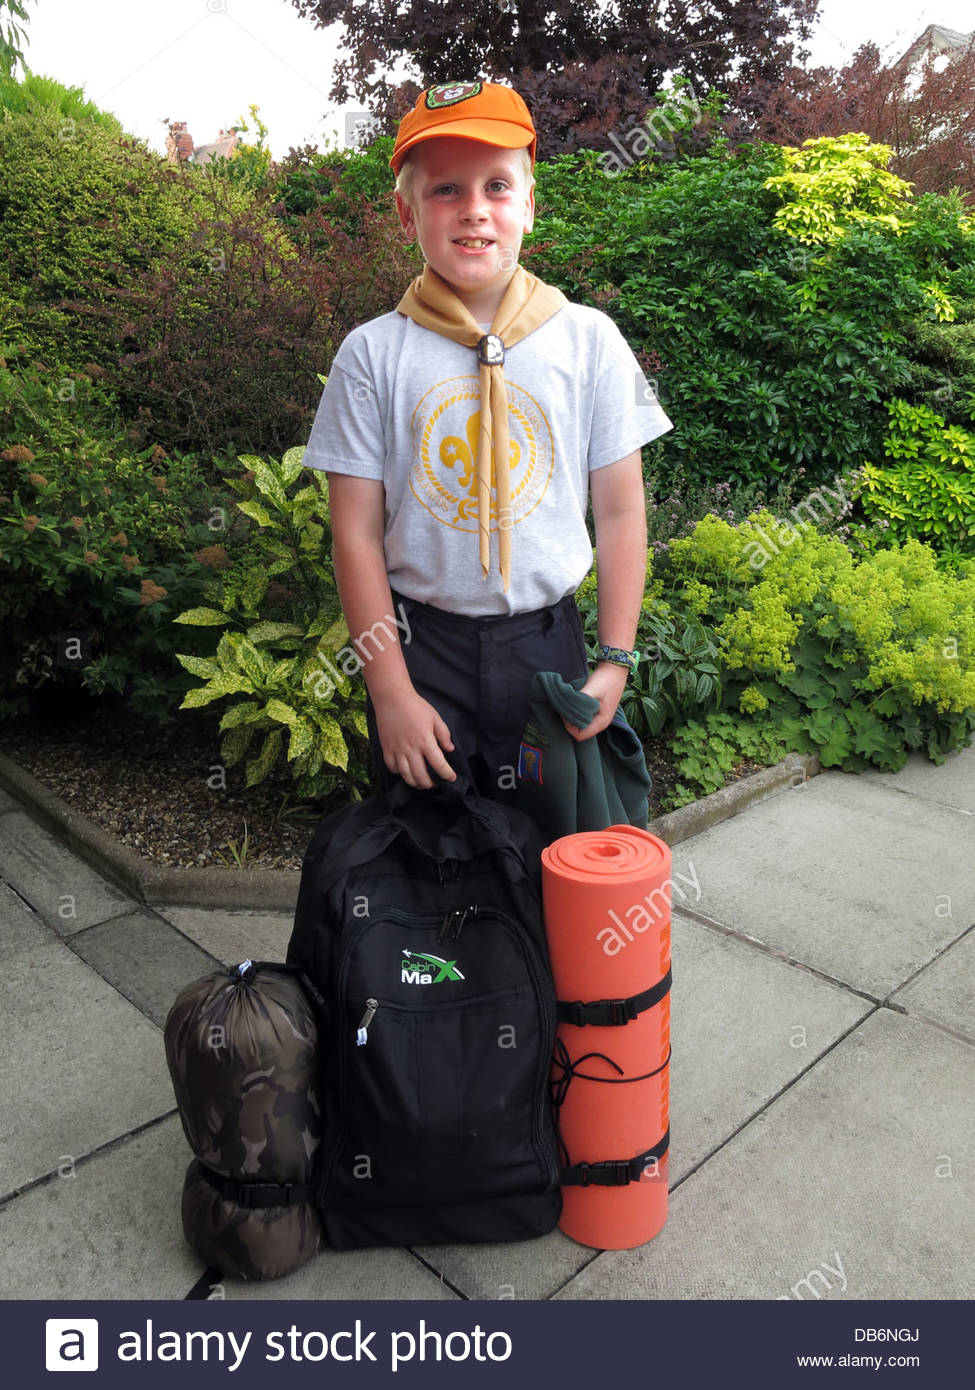 boy,lad,in,uniform,cubs,smiling,happy,summer,rucksack,bag,litbag,kit,woggle,camping,outdoors,badge,standing,proud,to,be,a,outside,cubcamp,9,nine,years,old,year,child,children,Warrington,east,Grappenhall,NW,north,west,northwest,England,Cheshire,UK,United,Kingdom,UK,GB,Great,Britain,british,full,gotonysmith,orange,cap,hat,Buy Pictures of,Buy Images Of